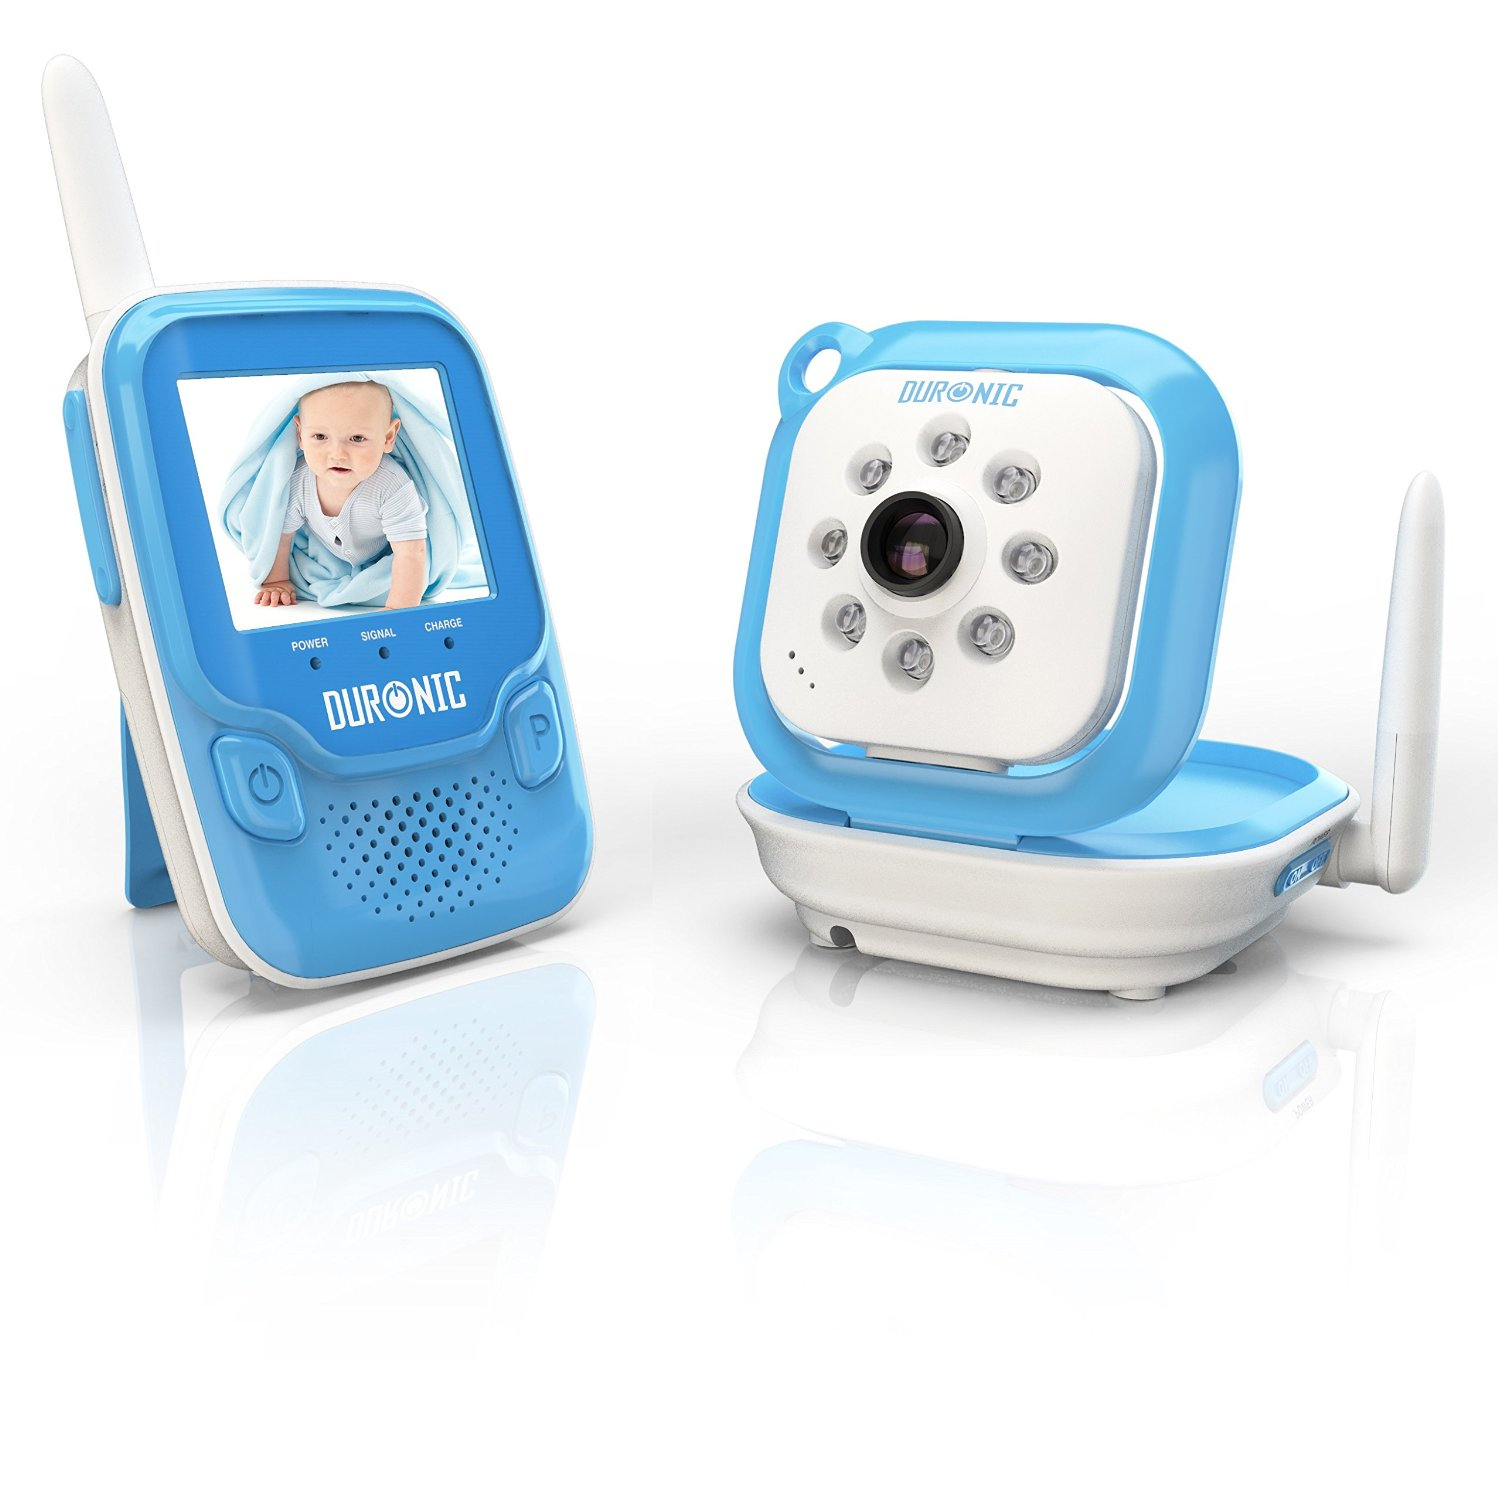 Duronic B101B Video Baby Monitor